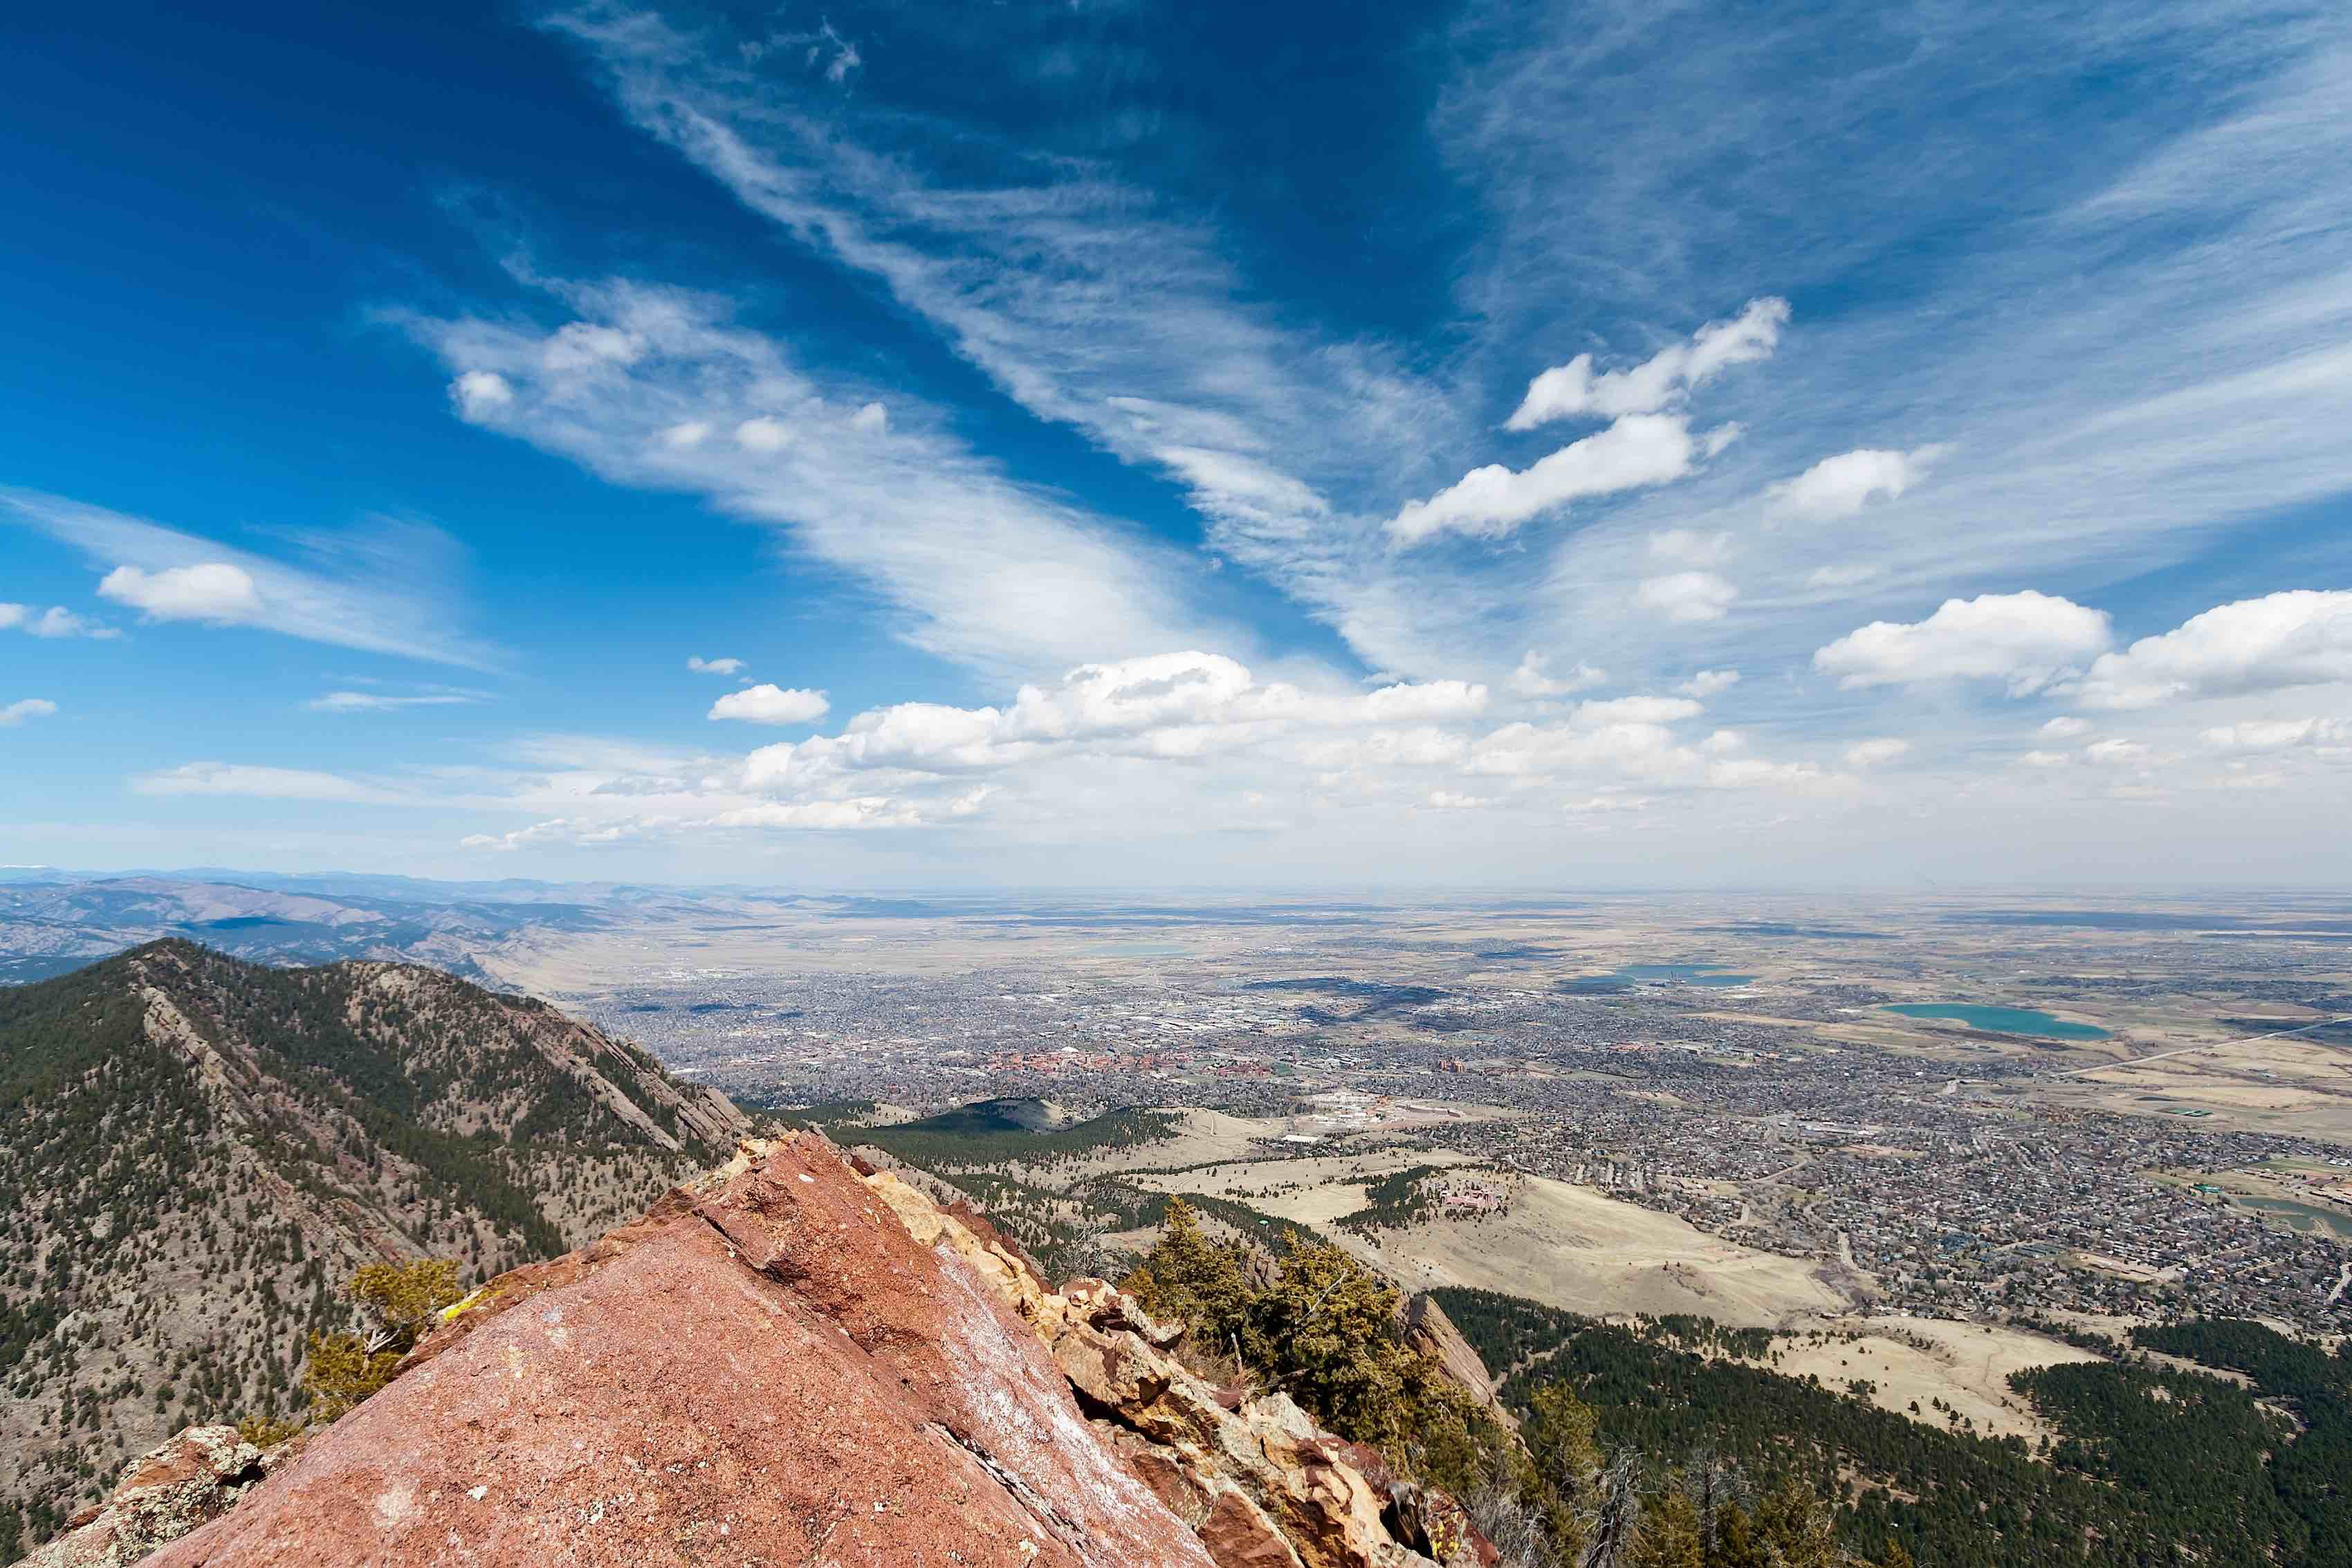 Viw of Boulder, CO from mountain top